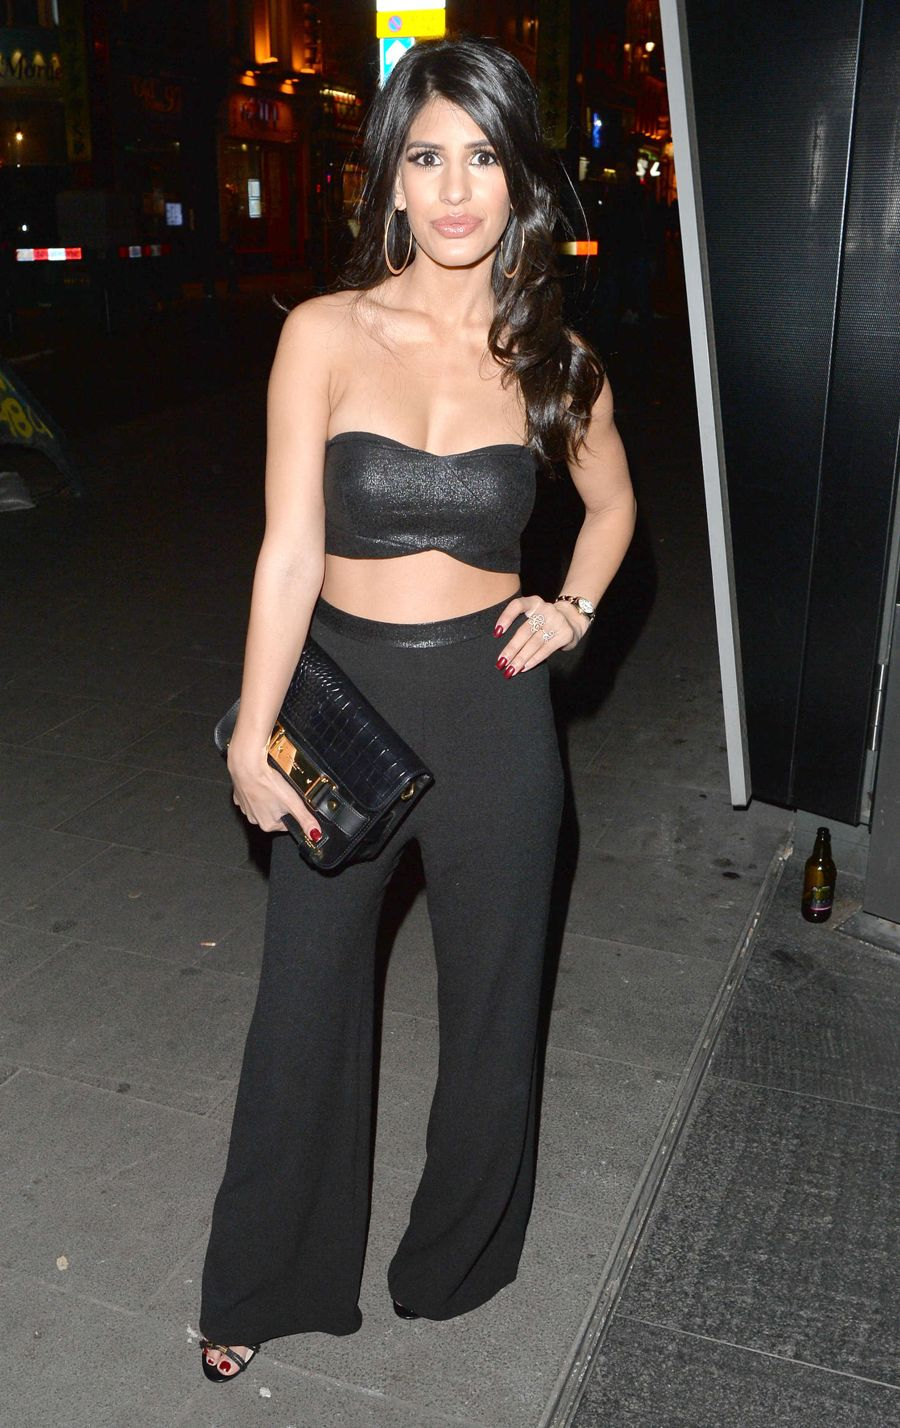 Jasmin Walia Night out in London